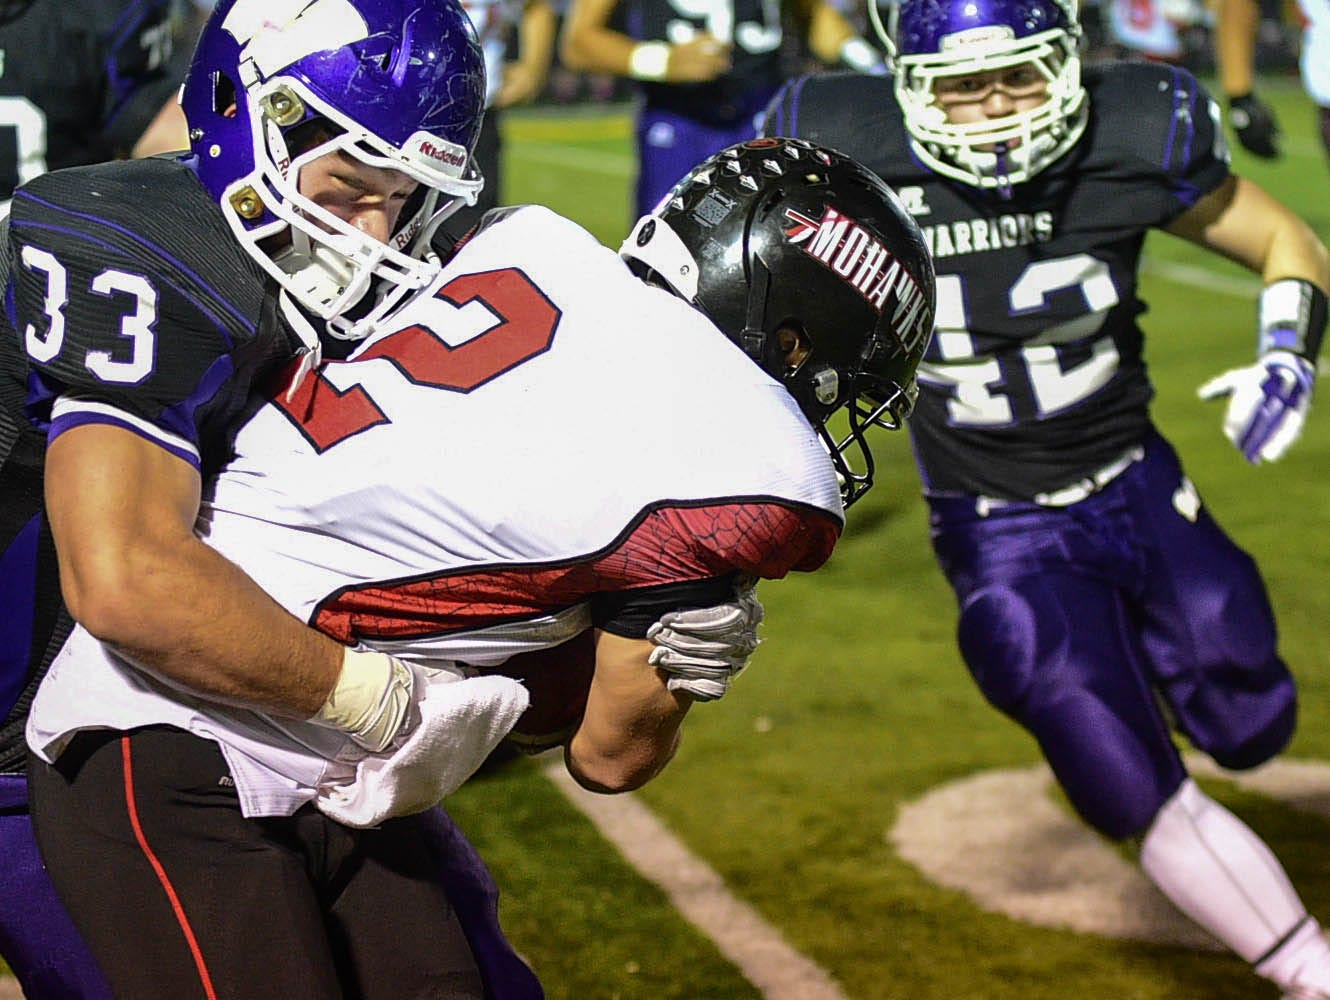 Waukee's linebacker Kyle Boulanger (33) manages to stop Mason City's quarterback Austin Hemmen (2) after he scrambled out of the backfield and gained several yards during the first half of the game at Waukee Stadium on Friday, Oct. 24, 2014.